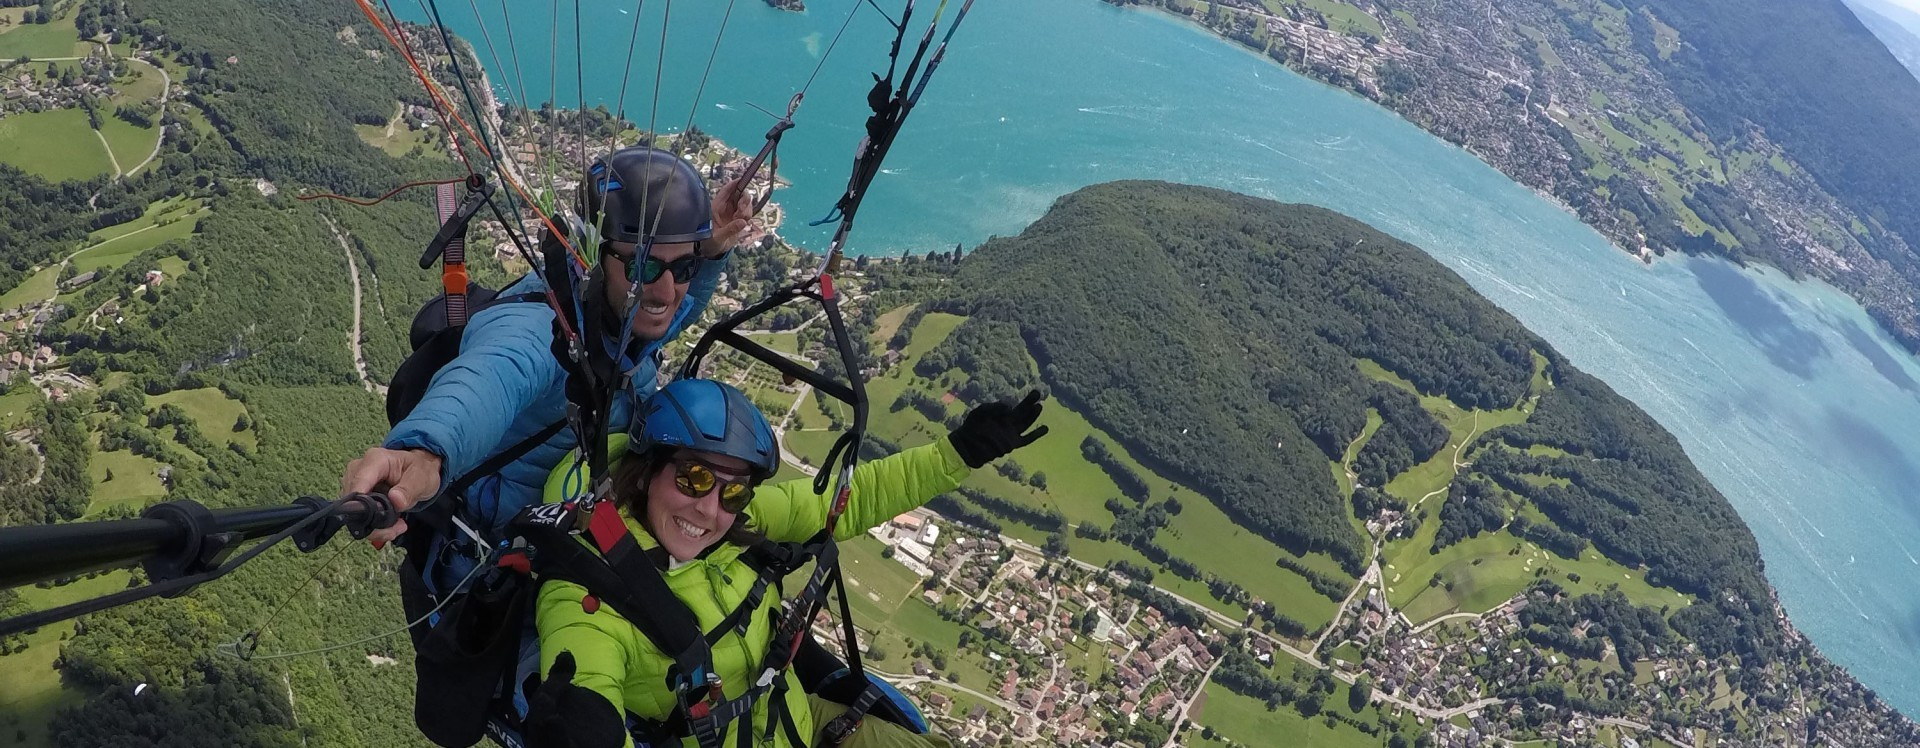 biplace-parapente-annecy-1920x750-242